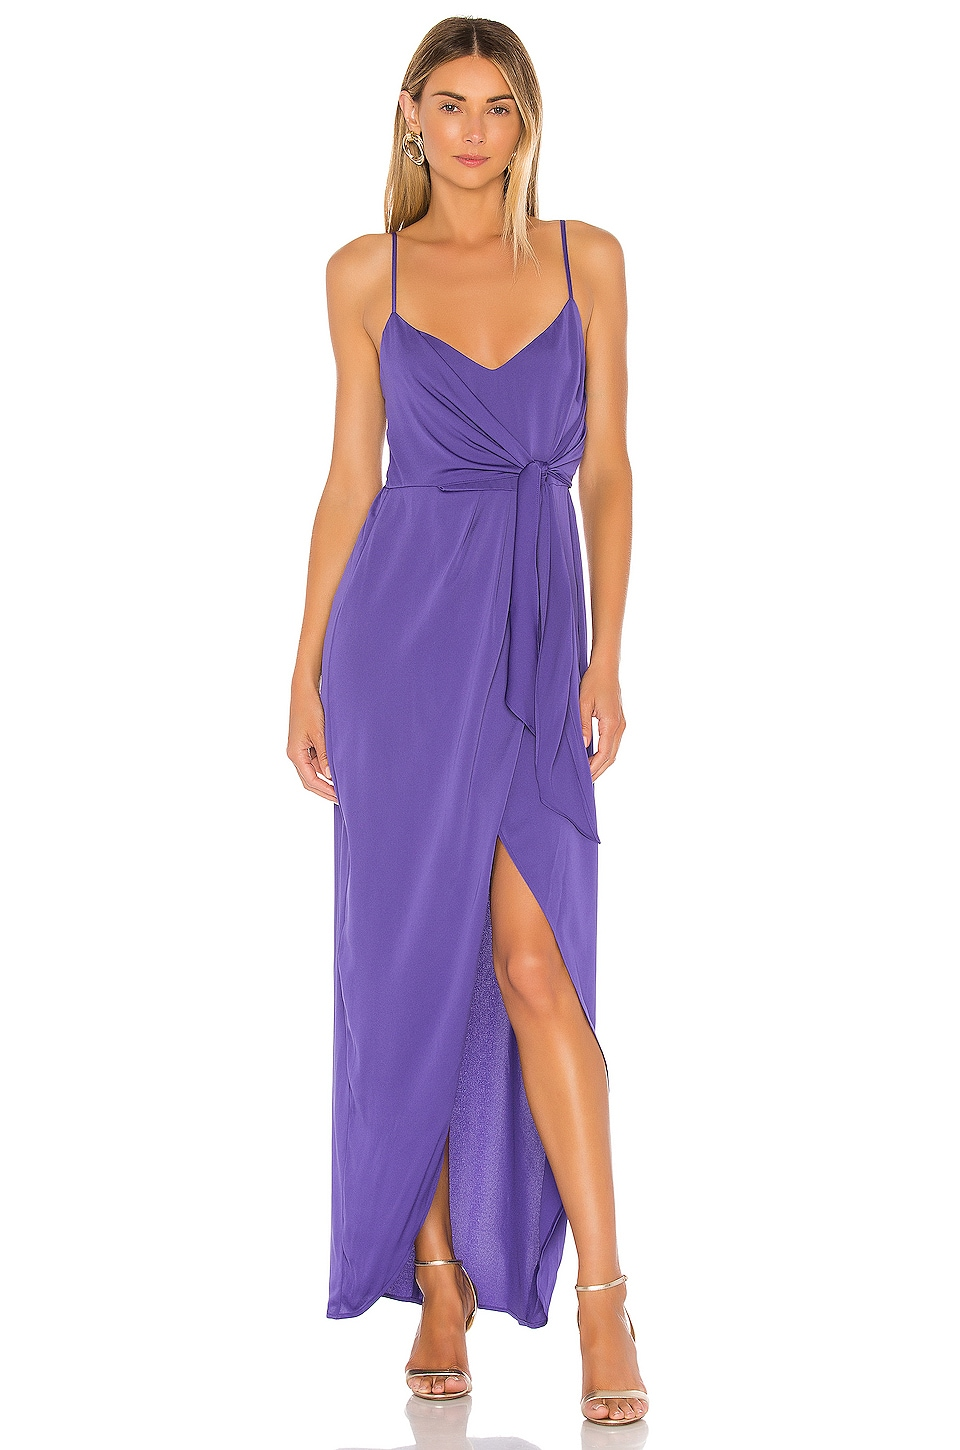 Tie Wrap Maxi Dress             BCBGeneration                                                                                                                                         Sale price:                                                                       CA$ 77.12                                                                                                  Previous price:                                                                       CA$ 170.20 6